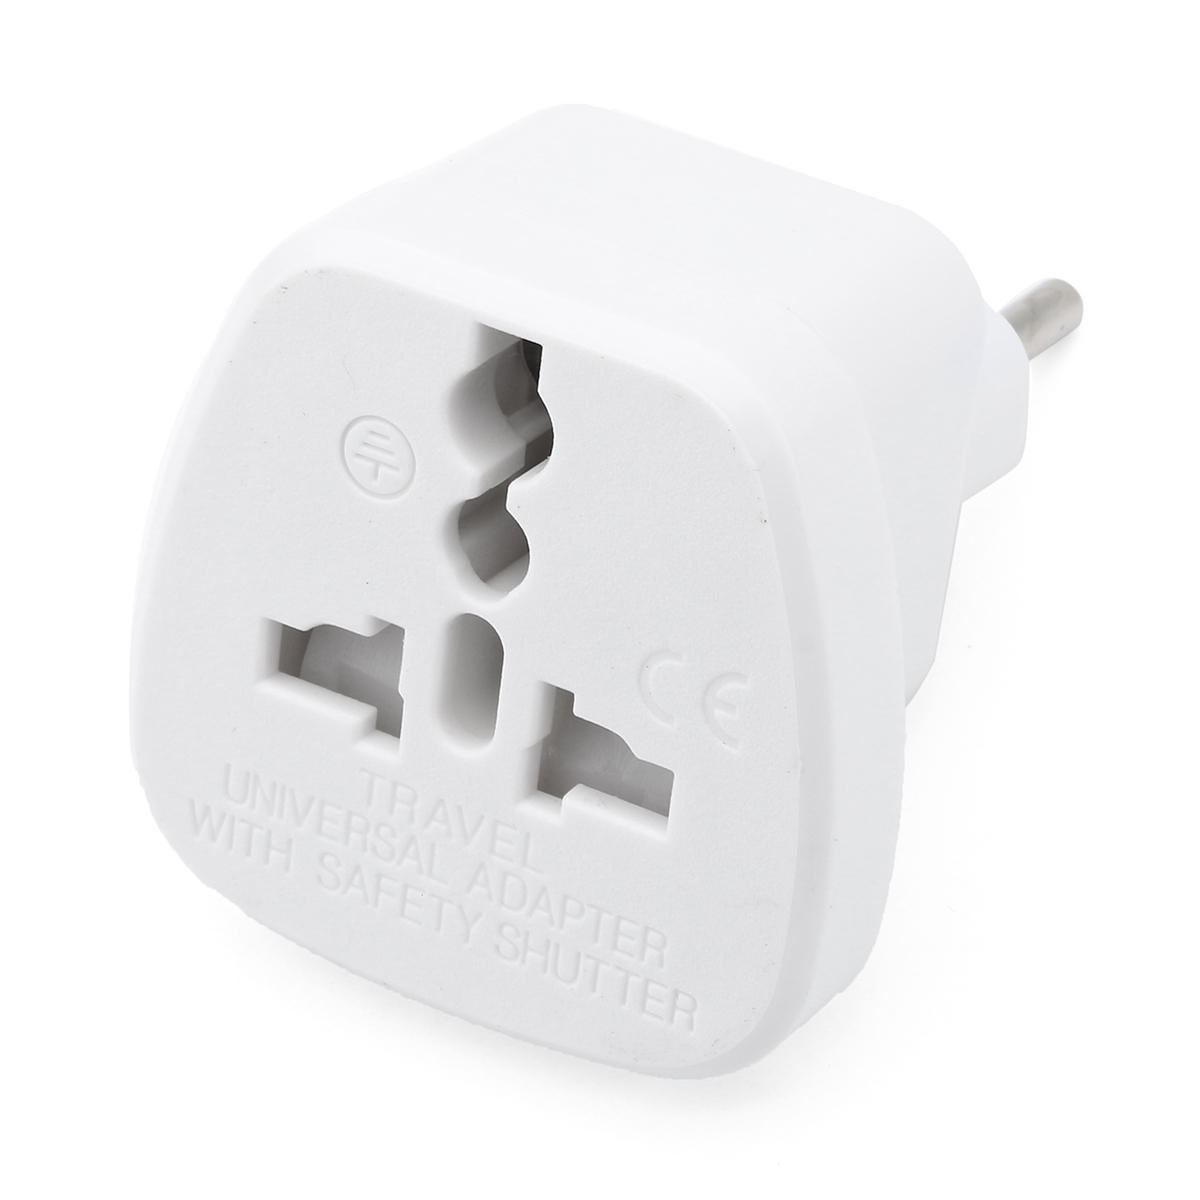 Universal UK/US/EU to 2 Pins India/Pakistan Adapter Converter Travelling Portable Plug Charger